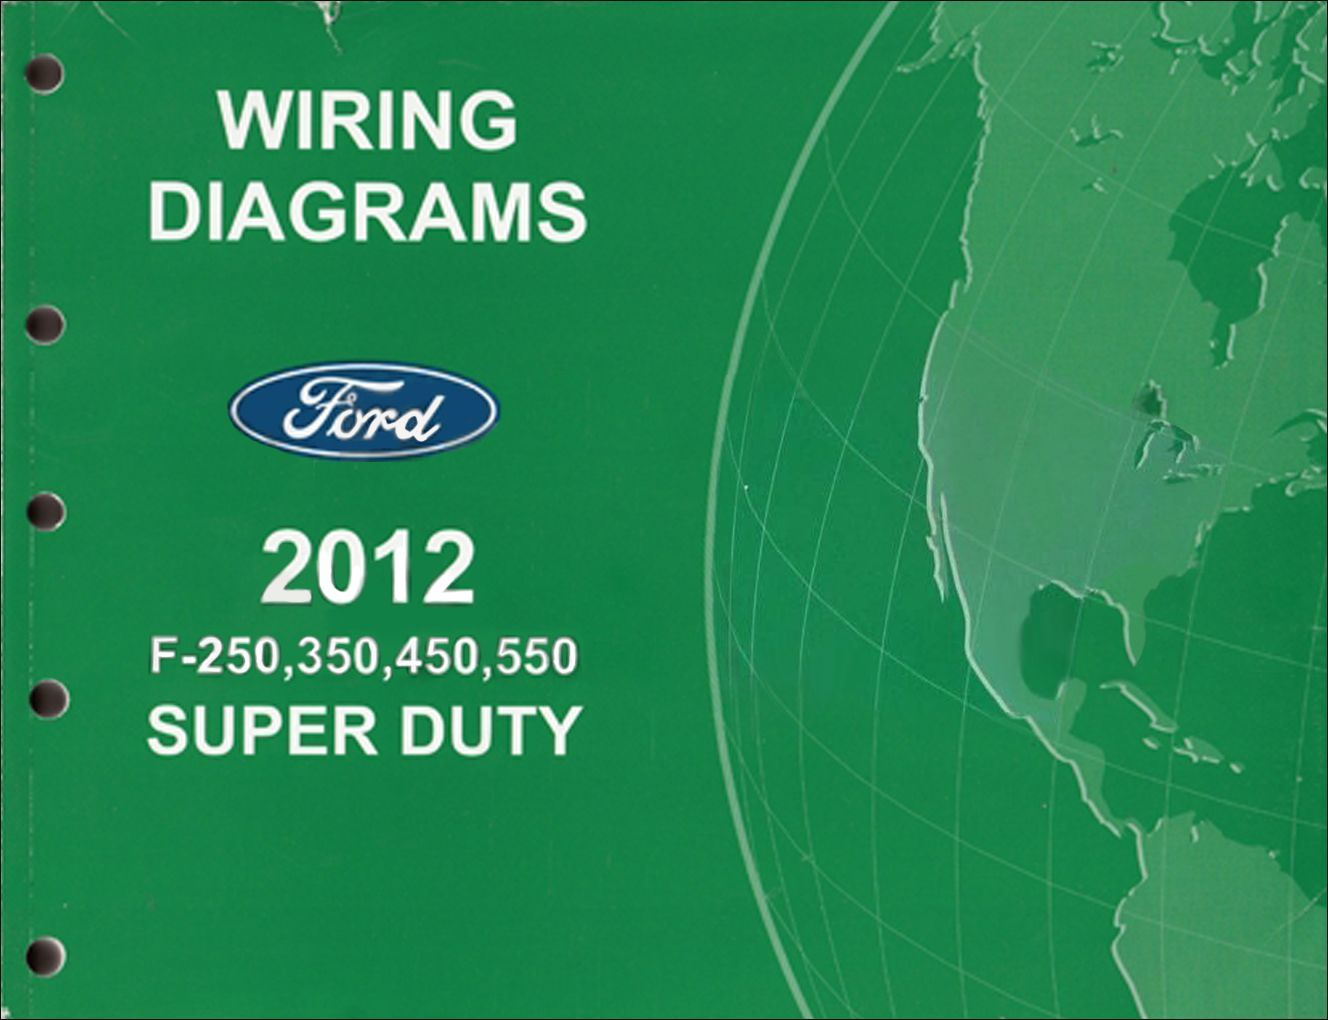 hight resolution of 2012 ford f 250 thru 550 super duty wiring diagram manual original ford f250 wiring diagram 95 ford f250 wiring diagram